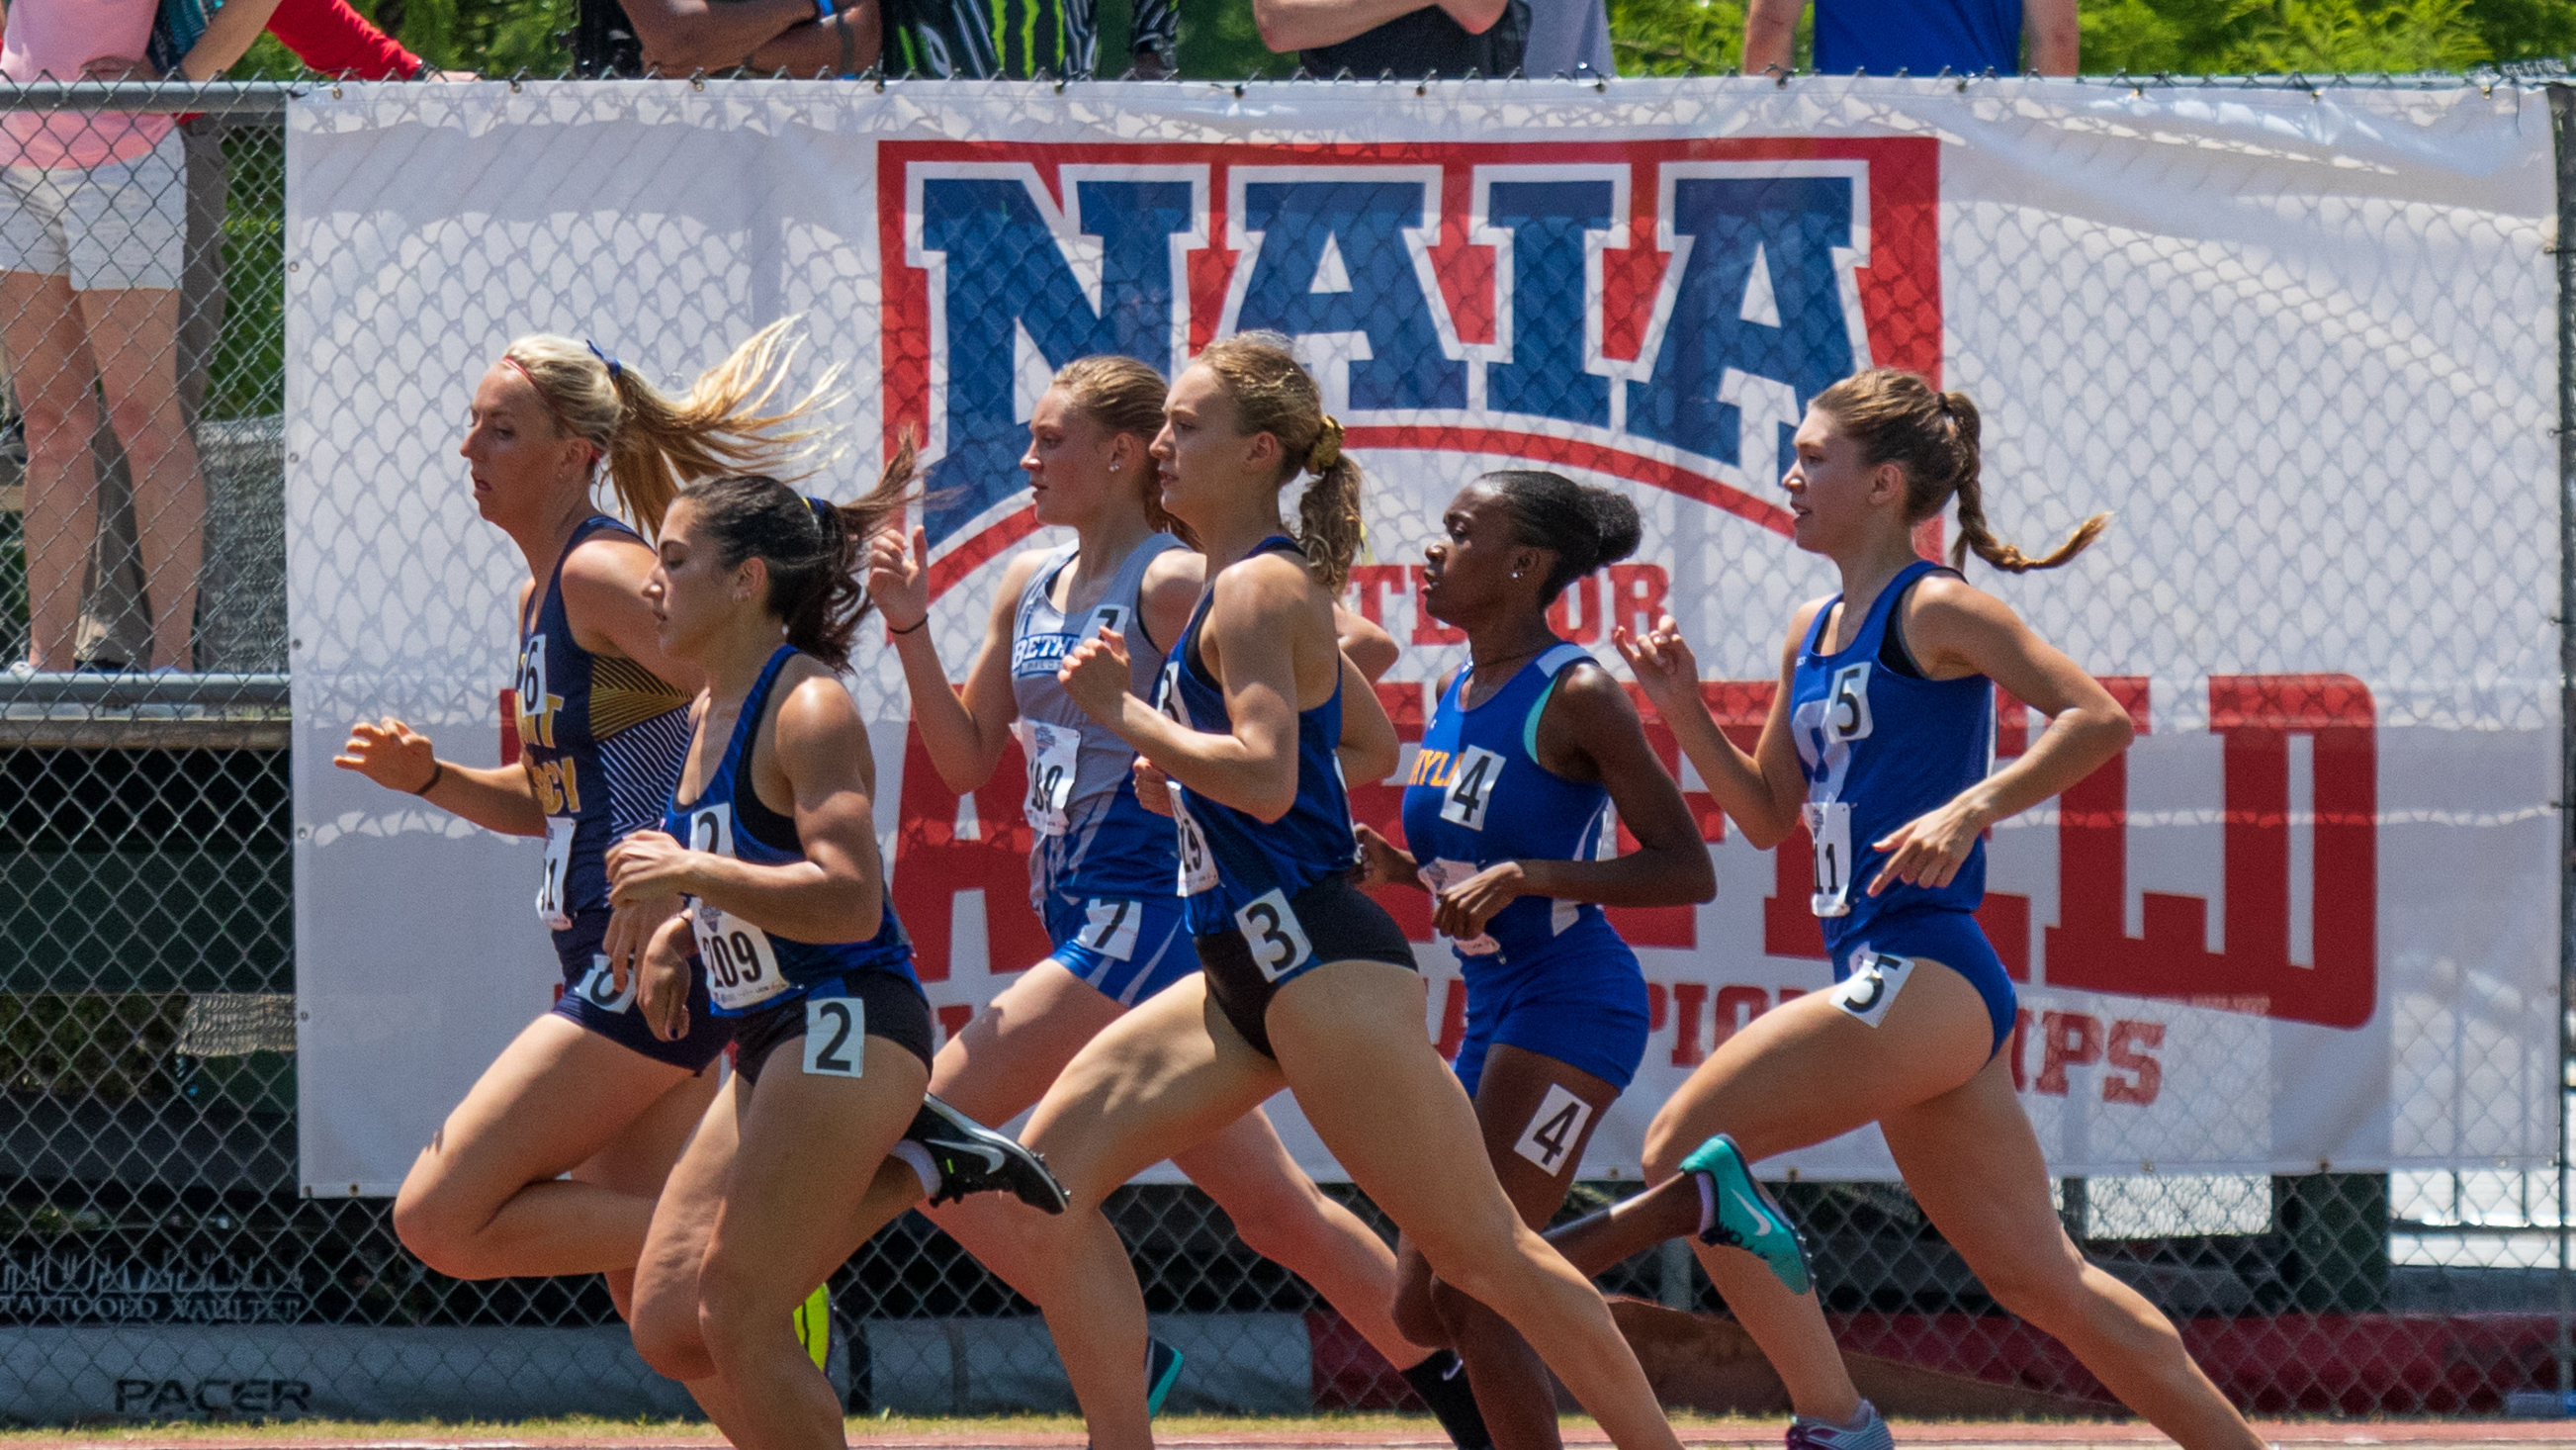 Day 2 -2019 Women's Outdoor Track and Field Championships